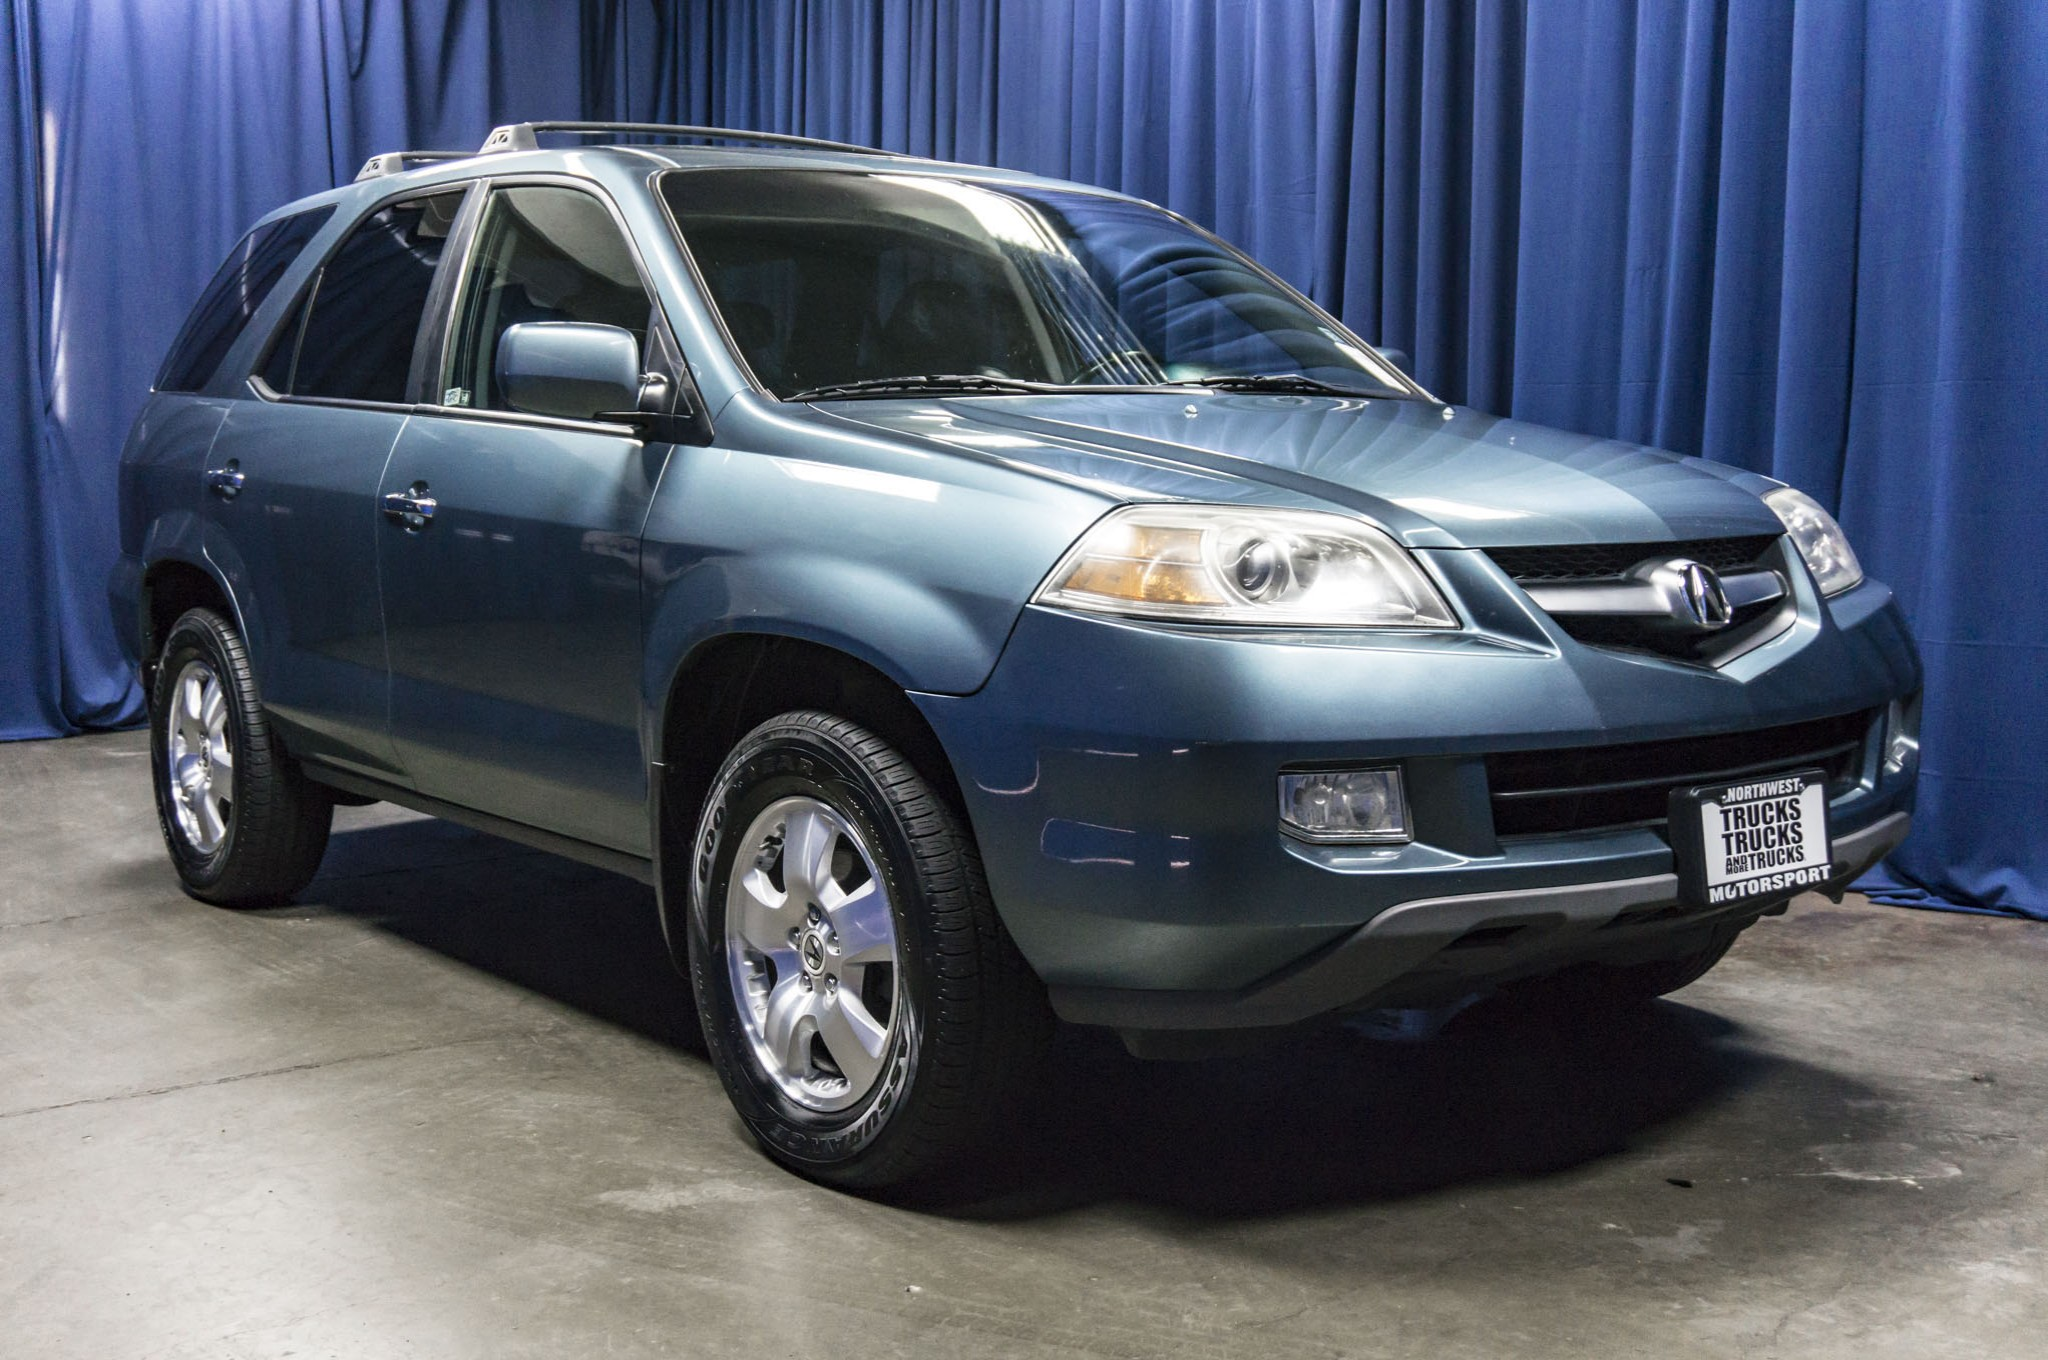 common at navi touring available vdp for print suv pa mdx w acura delaware sale trenton philadeplphia in levittown